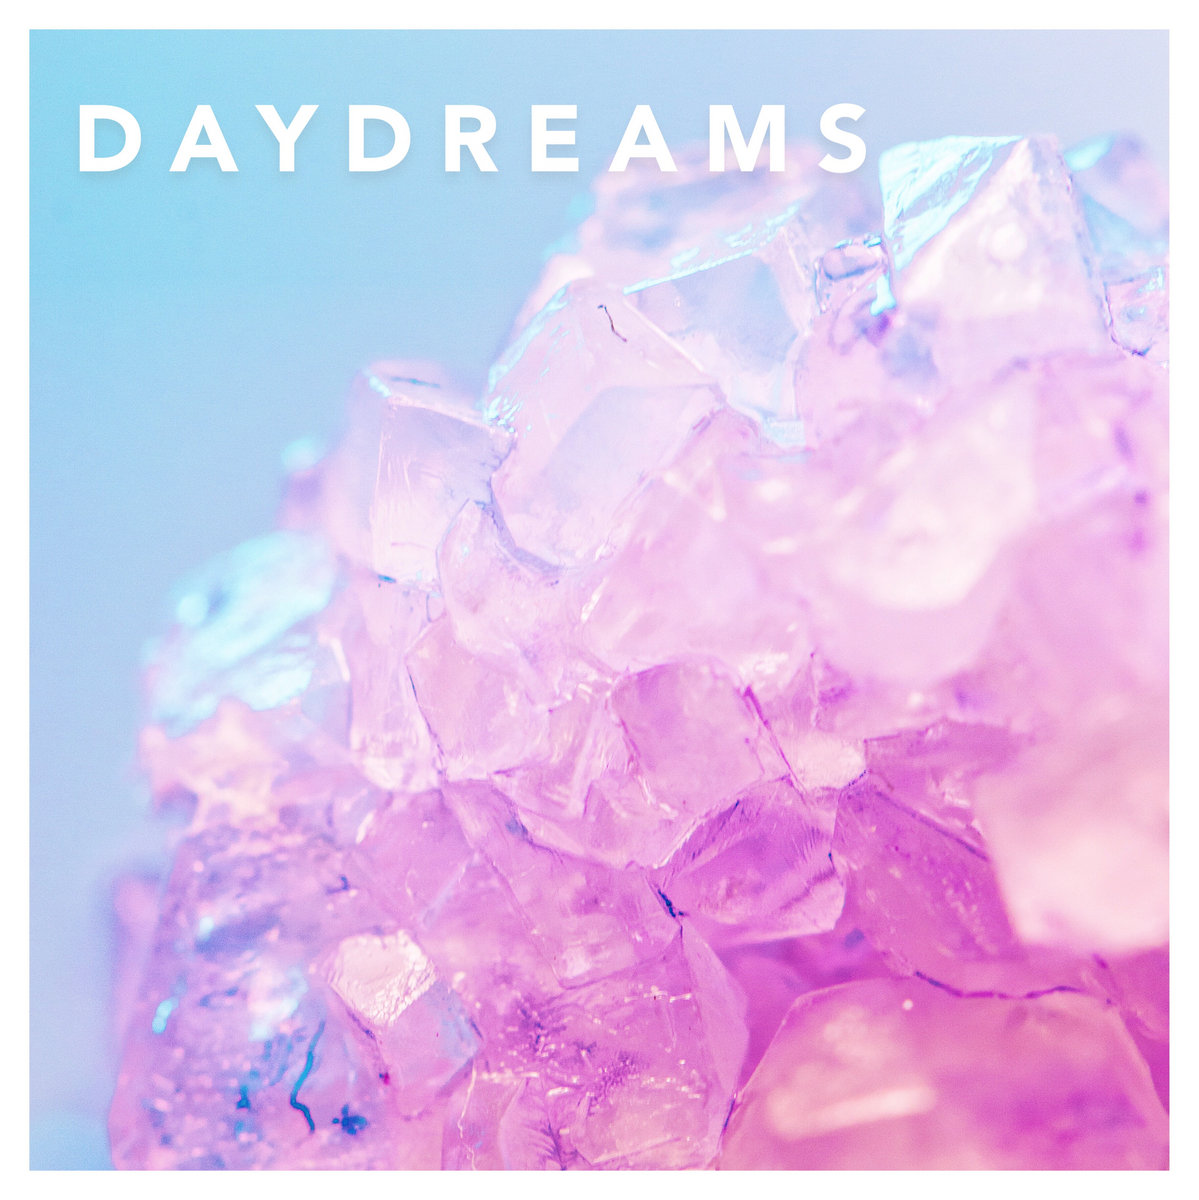 Daydreams by Nikki Parker